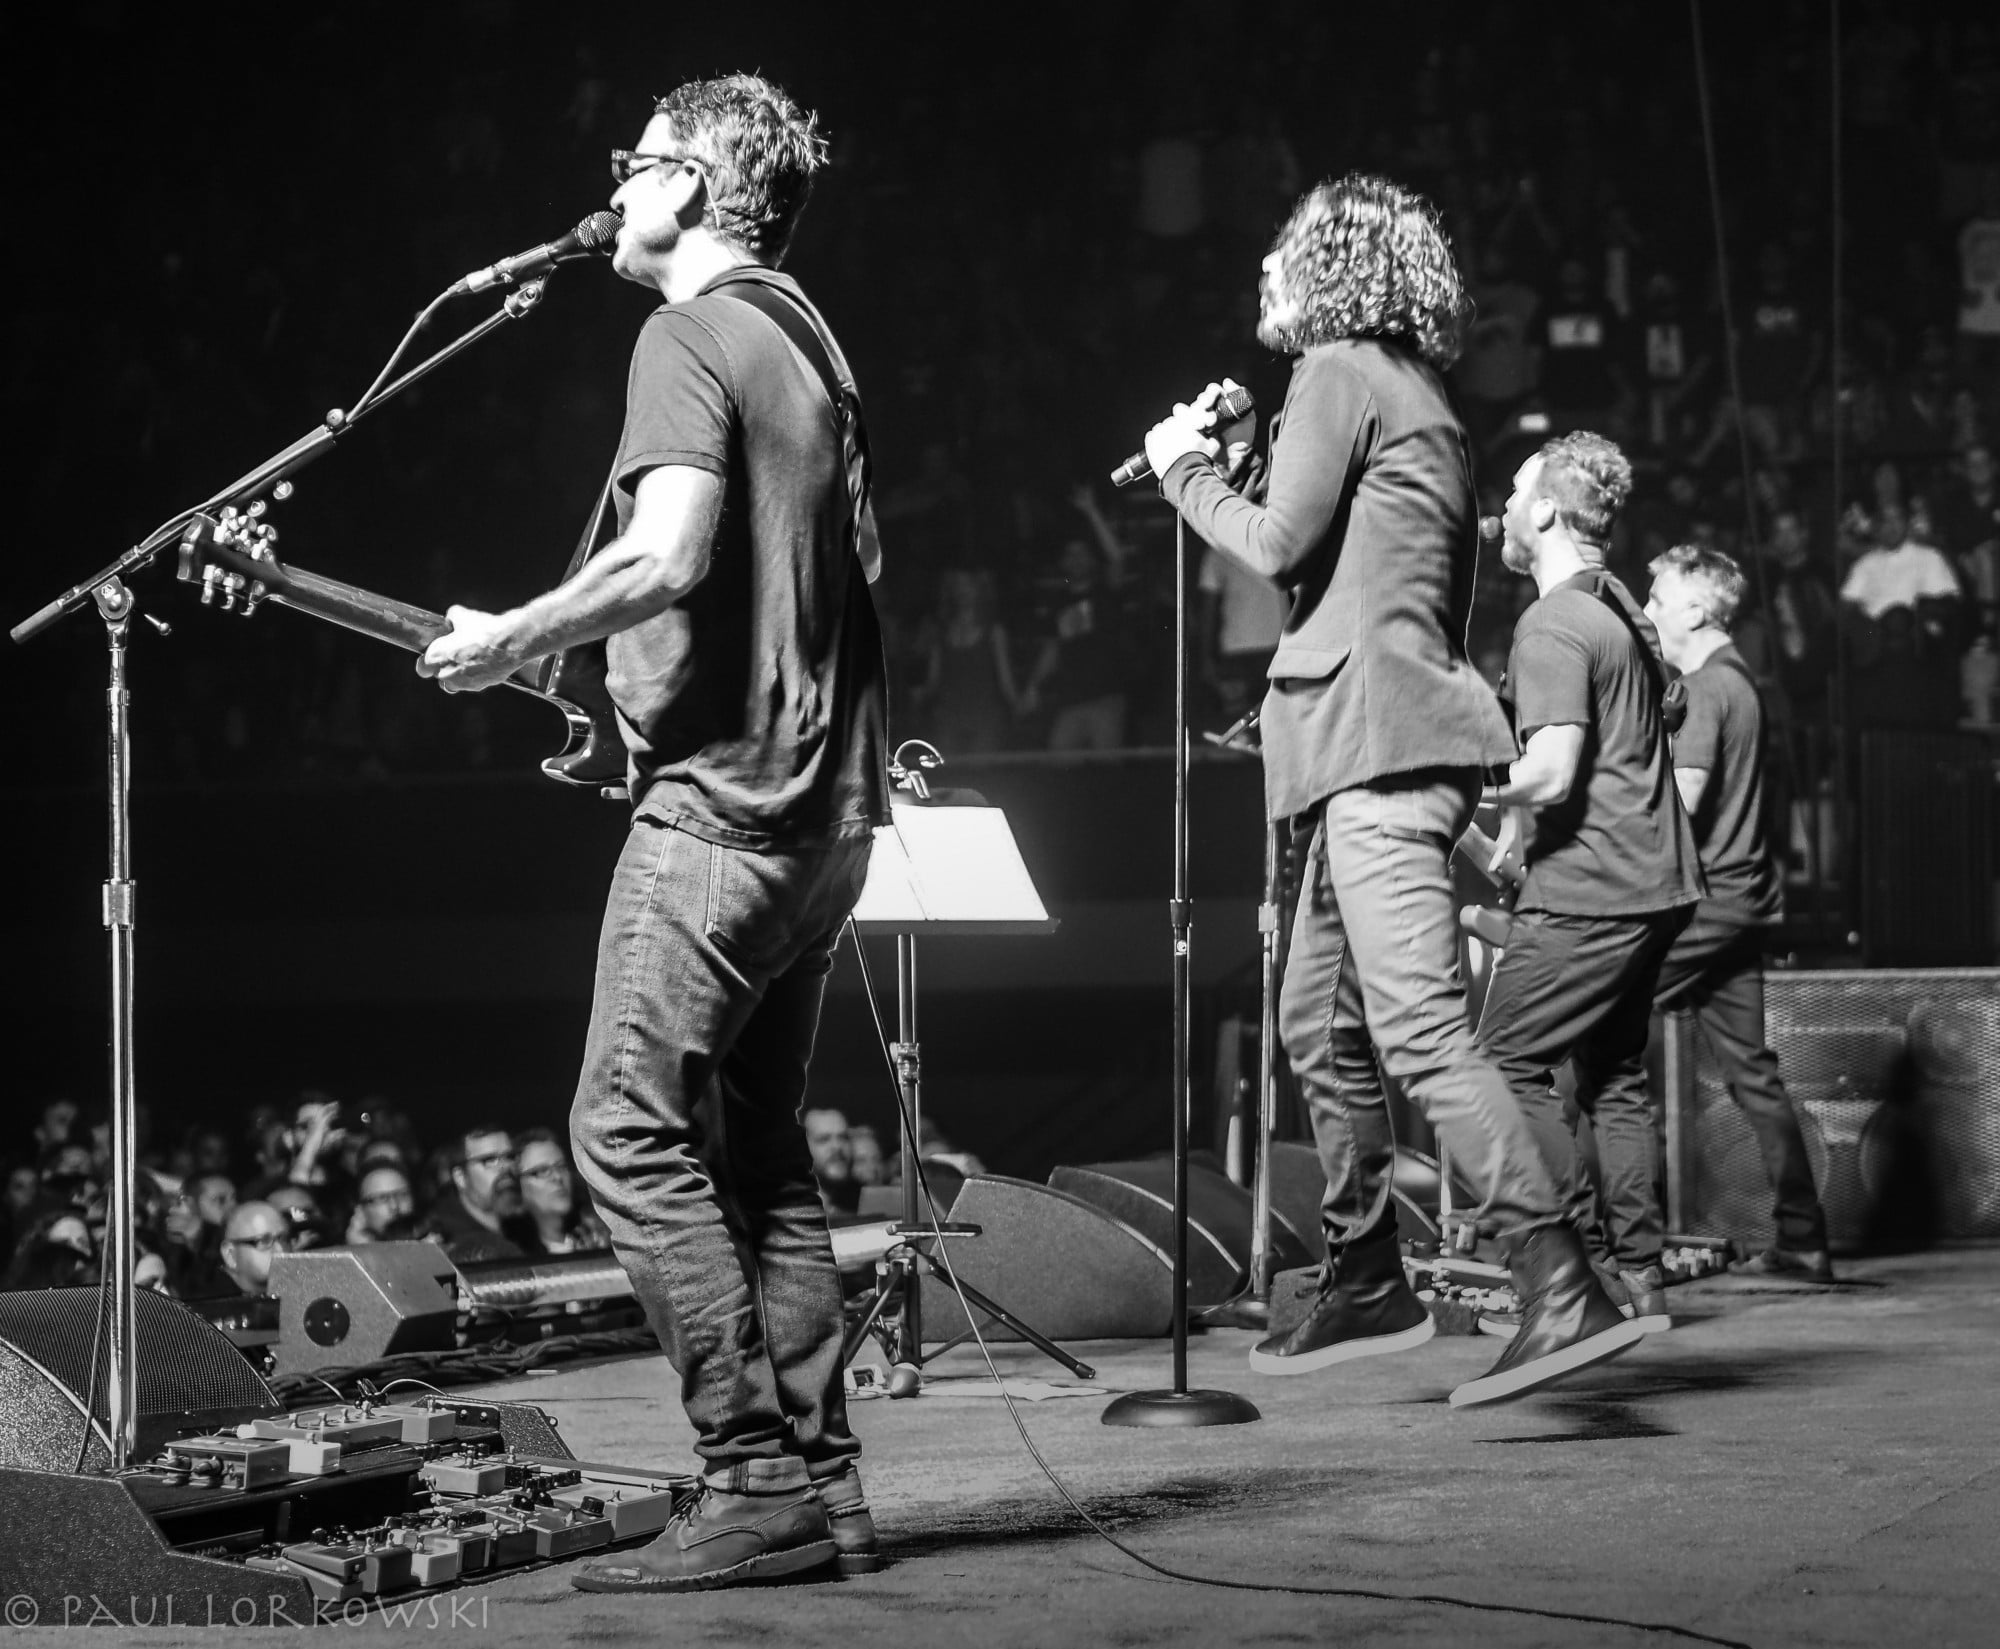 Remembering the Temple of the Dog Tour in 10 Stunning Photos